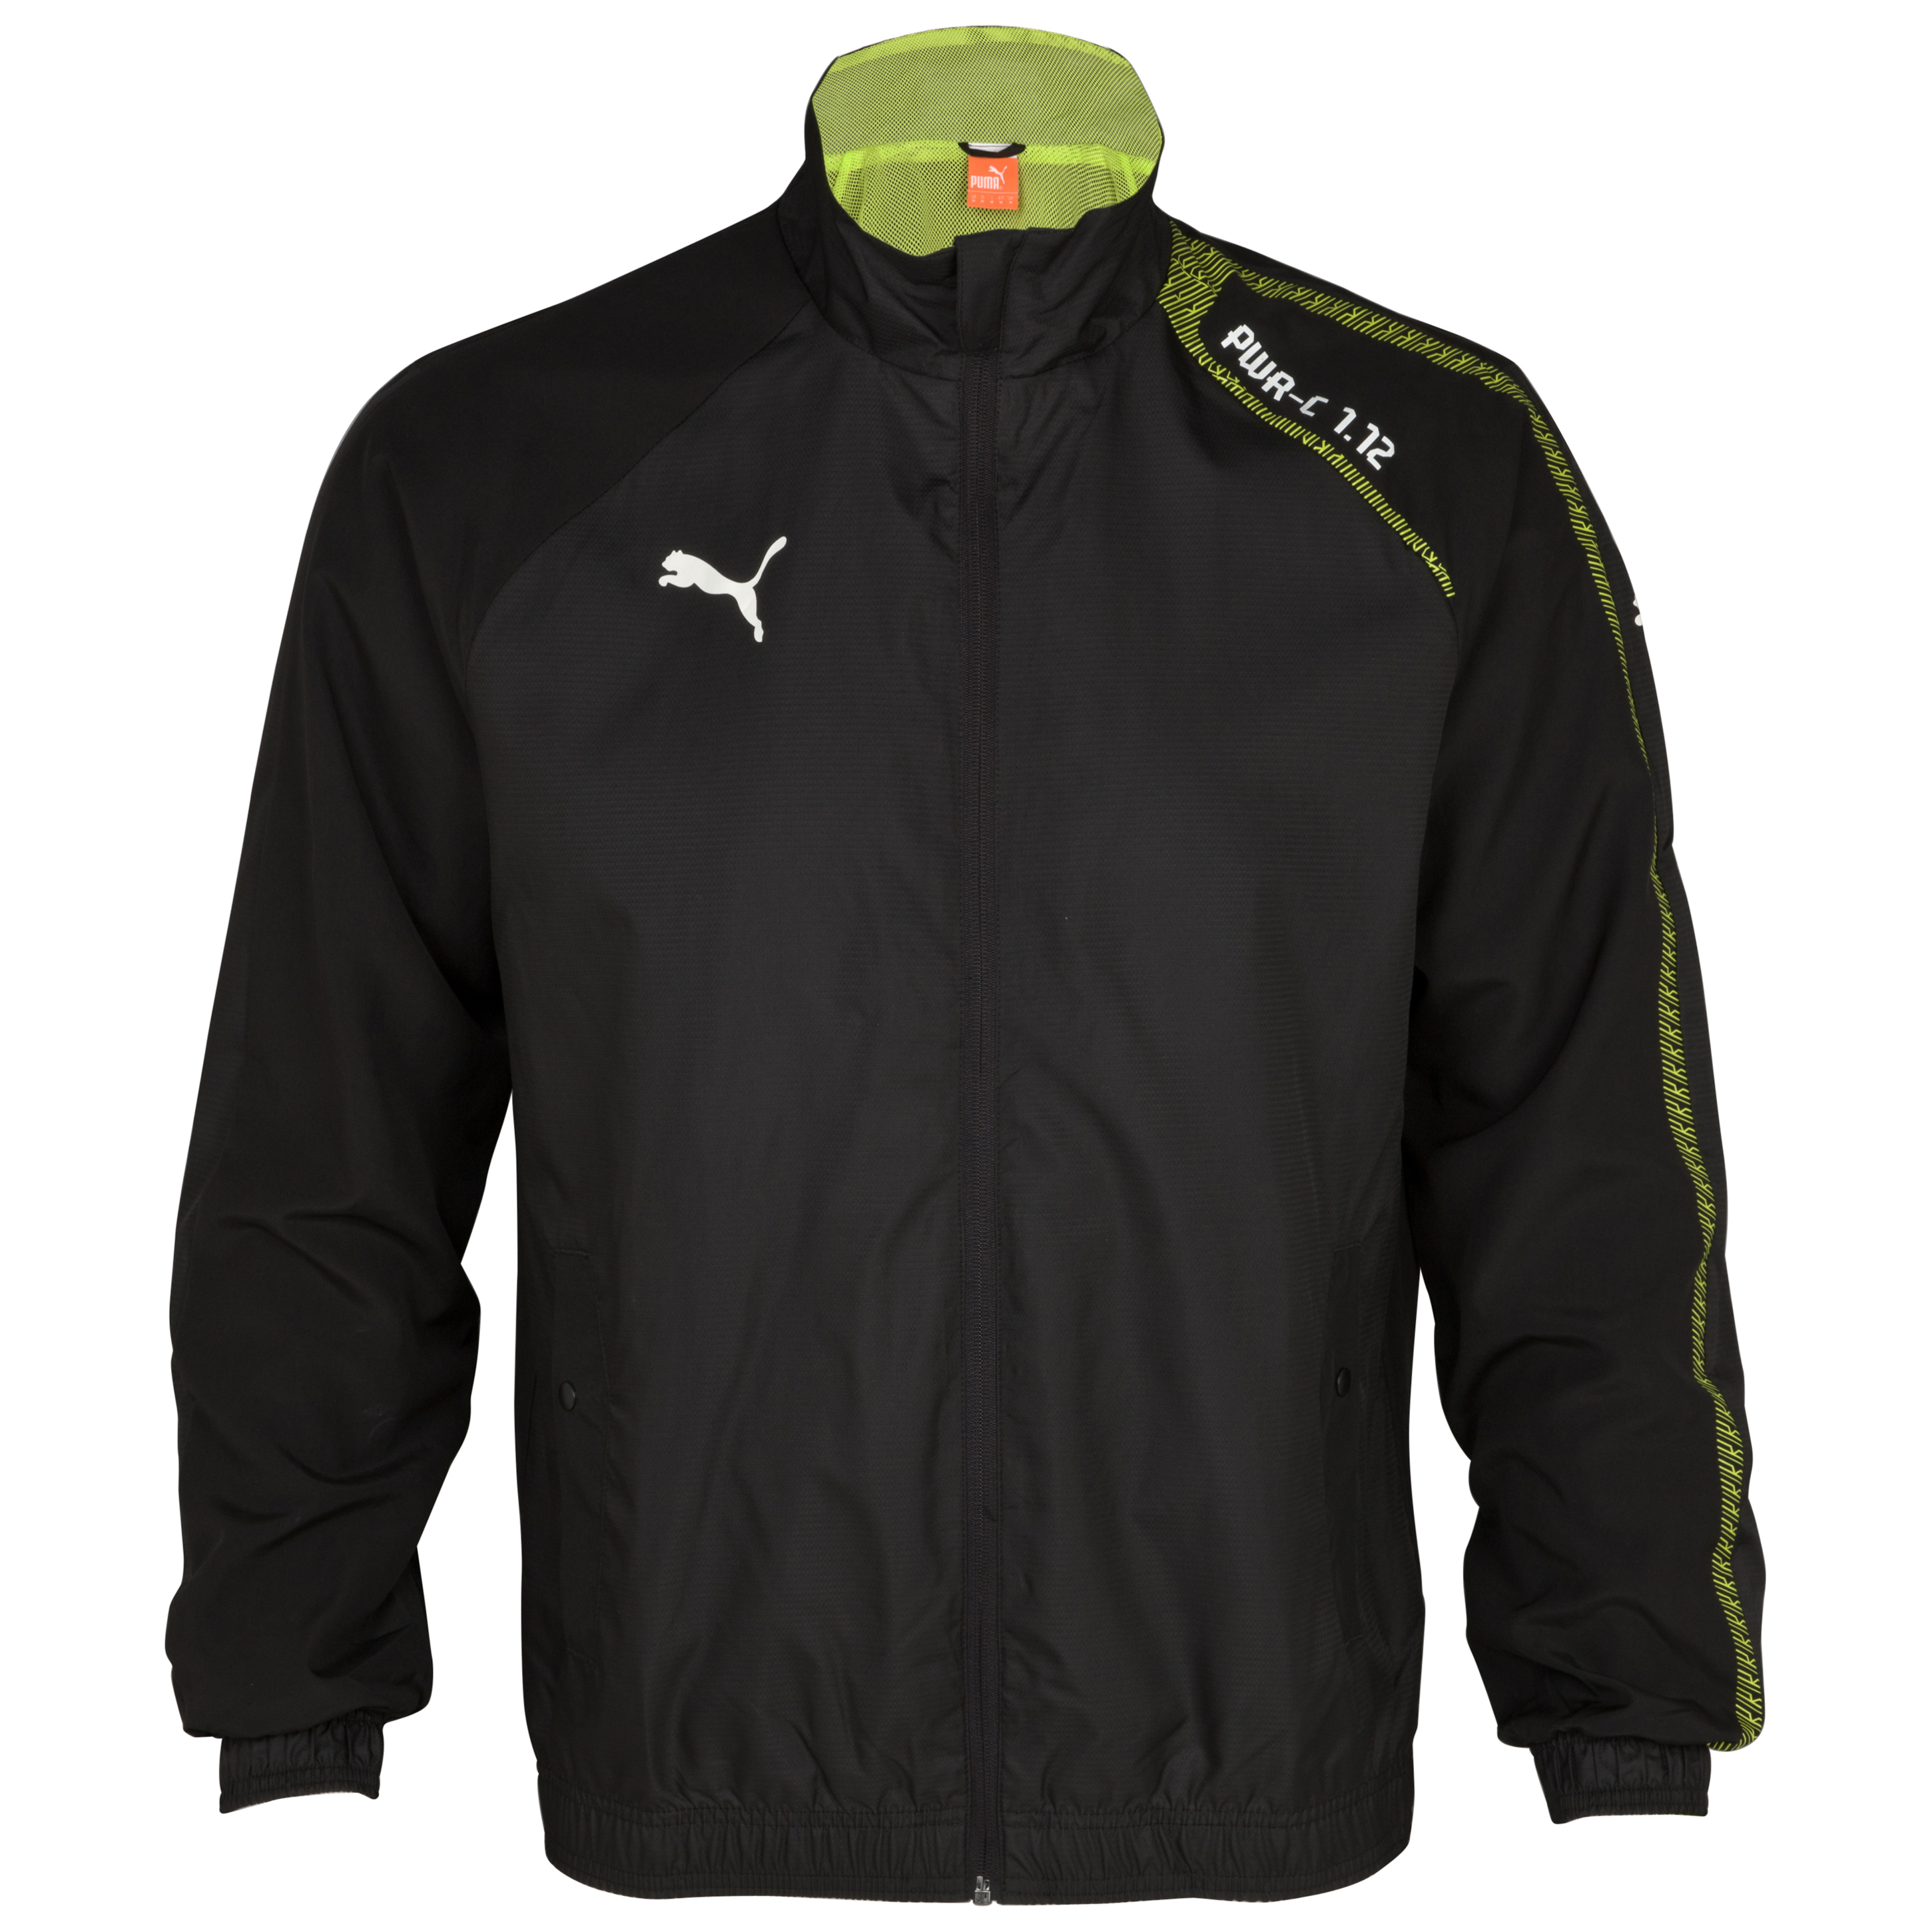 Puma Italia PowerCat 1.12 Woven Jacket - Black/Lime Punch